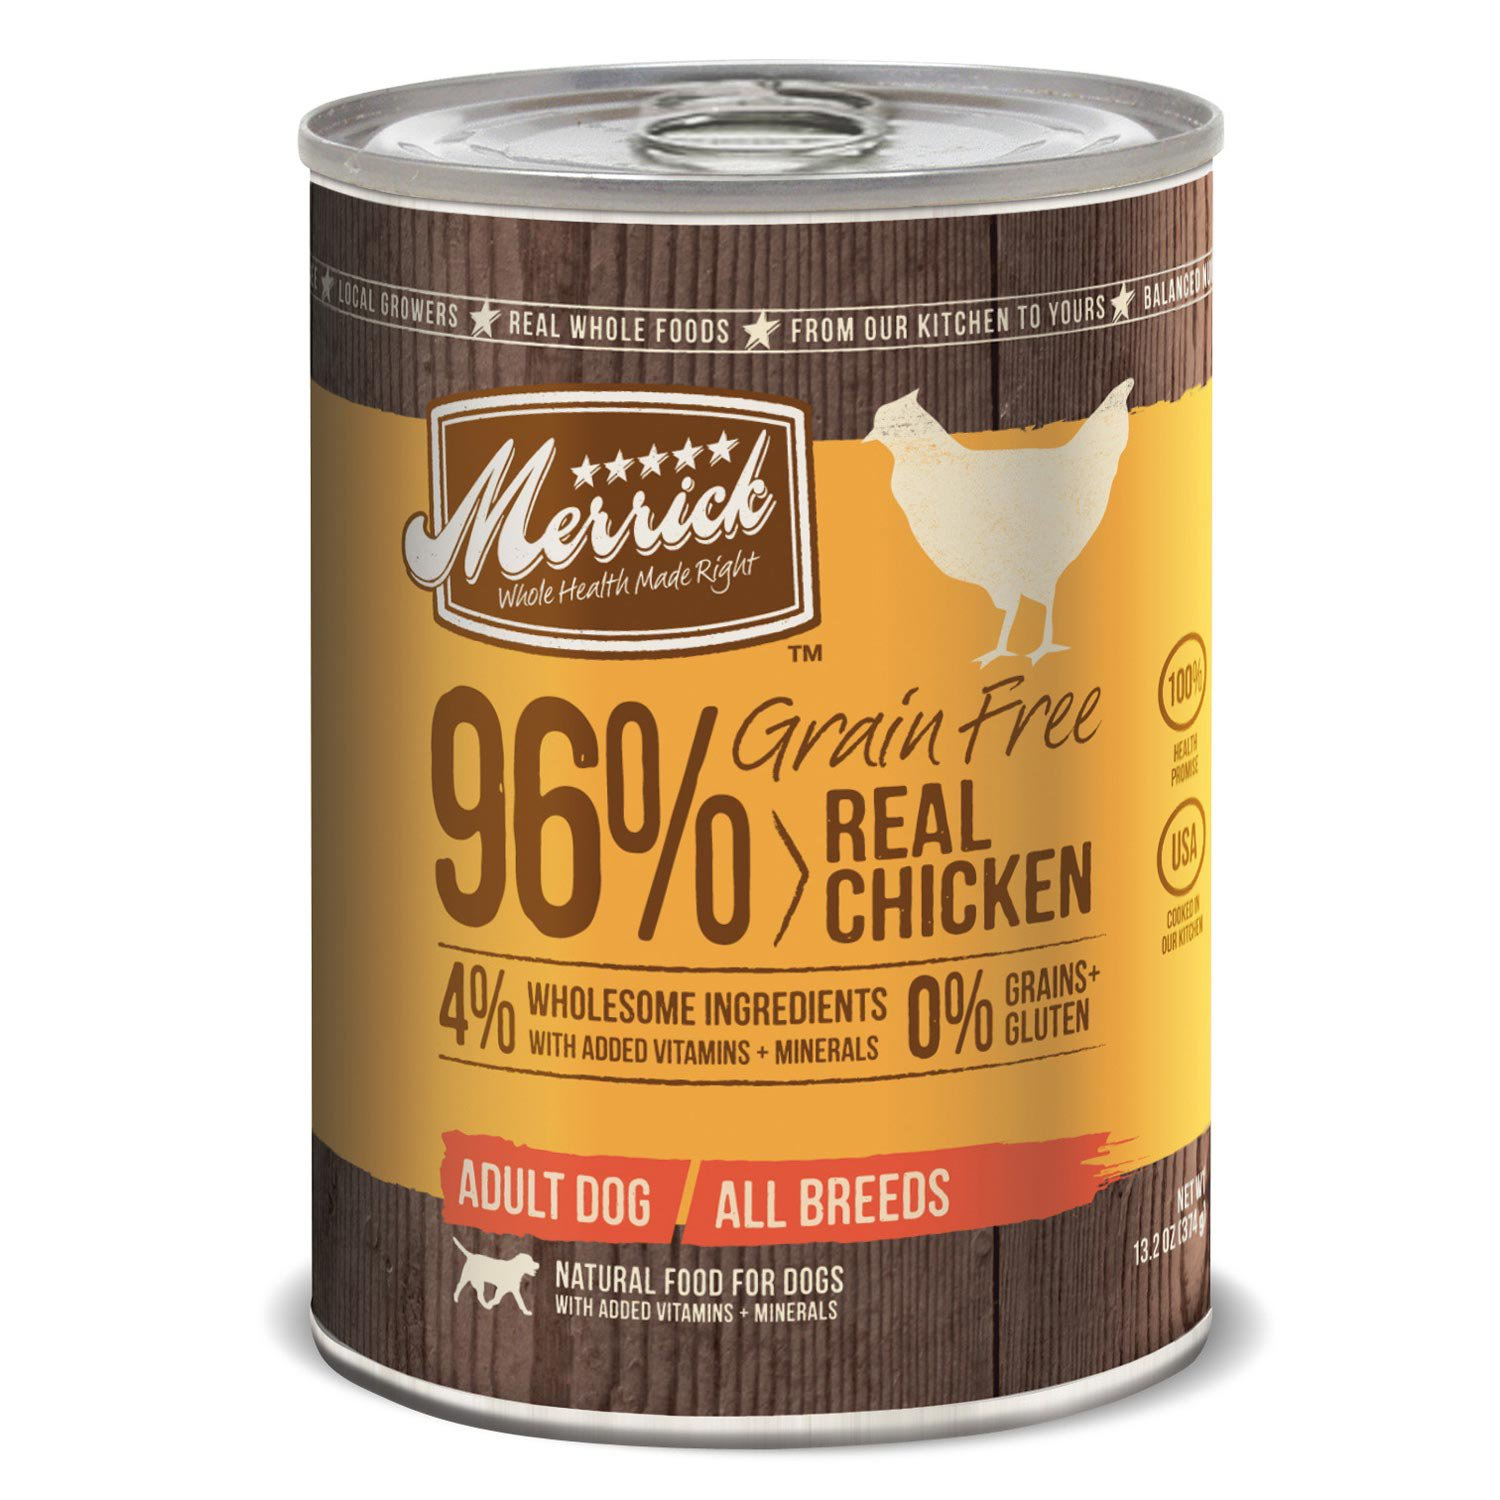 Chicken Free Canned Dog Food